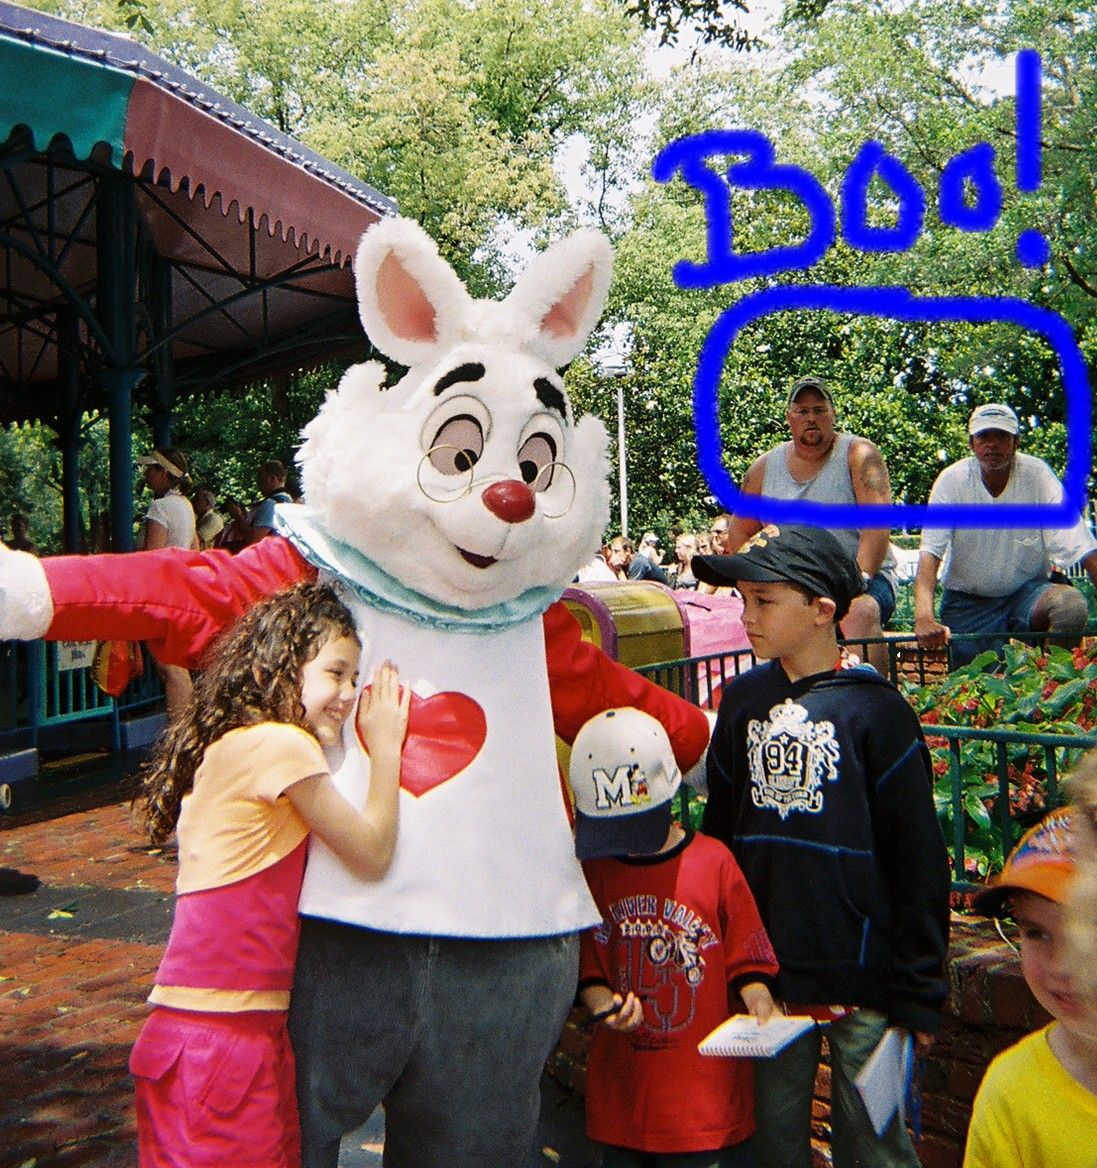 I took this pic of the rabbit and then notice the weird guys in the back...lol